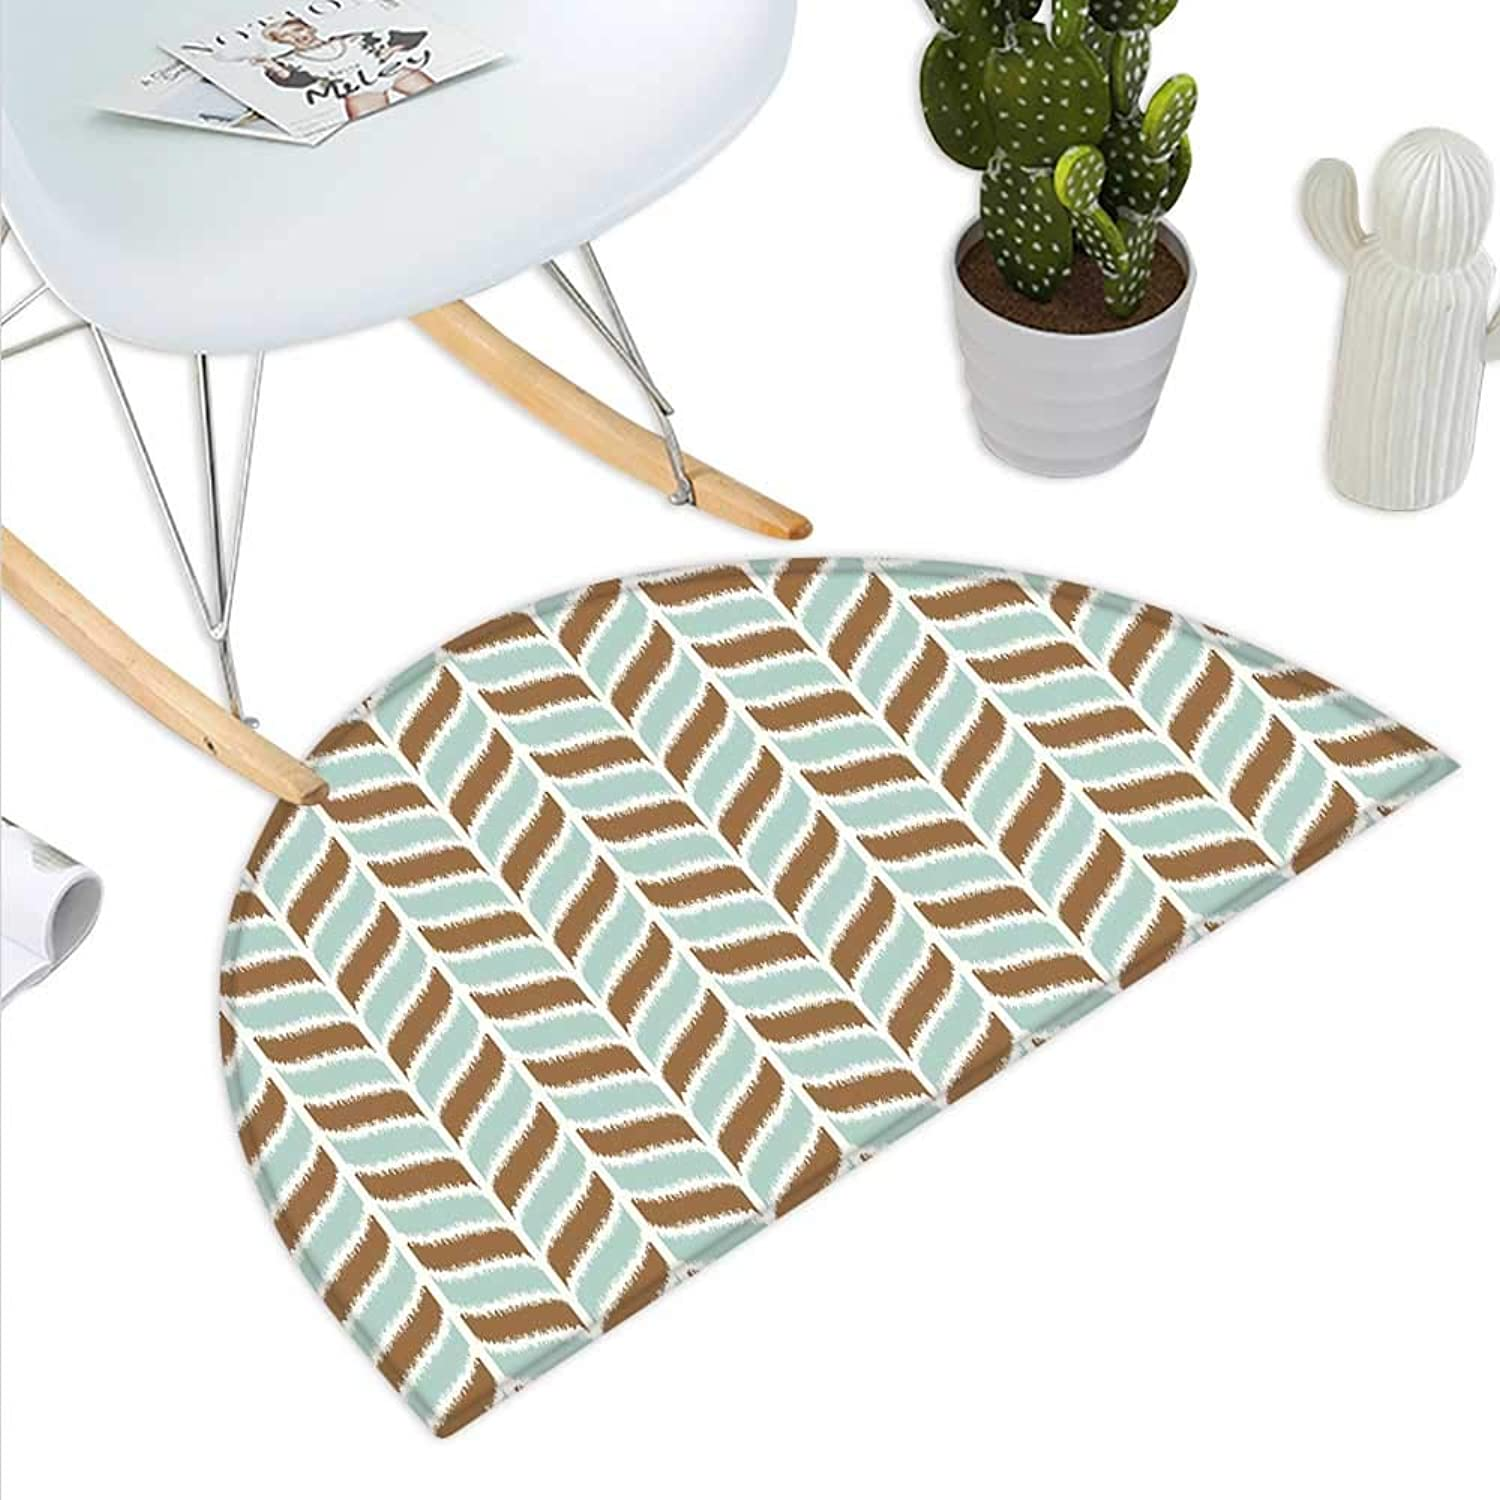 Aqua Semicircle Doormat Abstract Retro Grunge Vintage Tribal Braid Leaf Like Natural Image Halfmoon doormats H 39.3  xD 59  Brown White and Turquoise